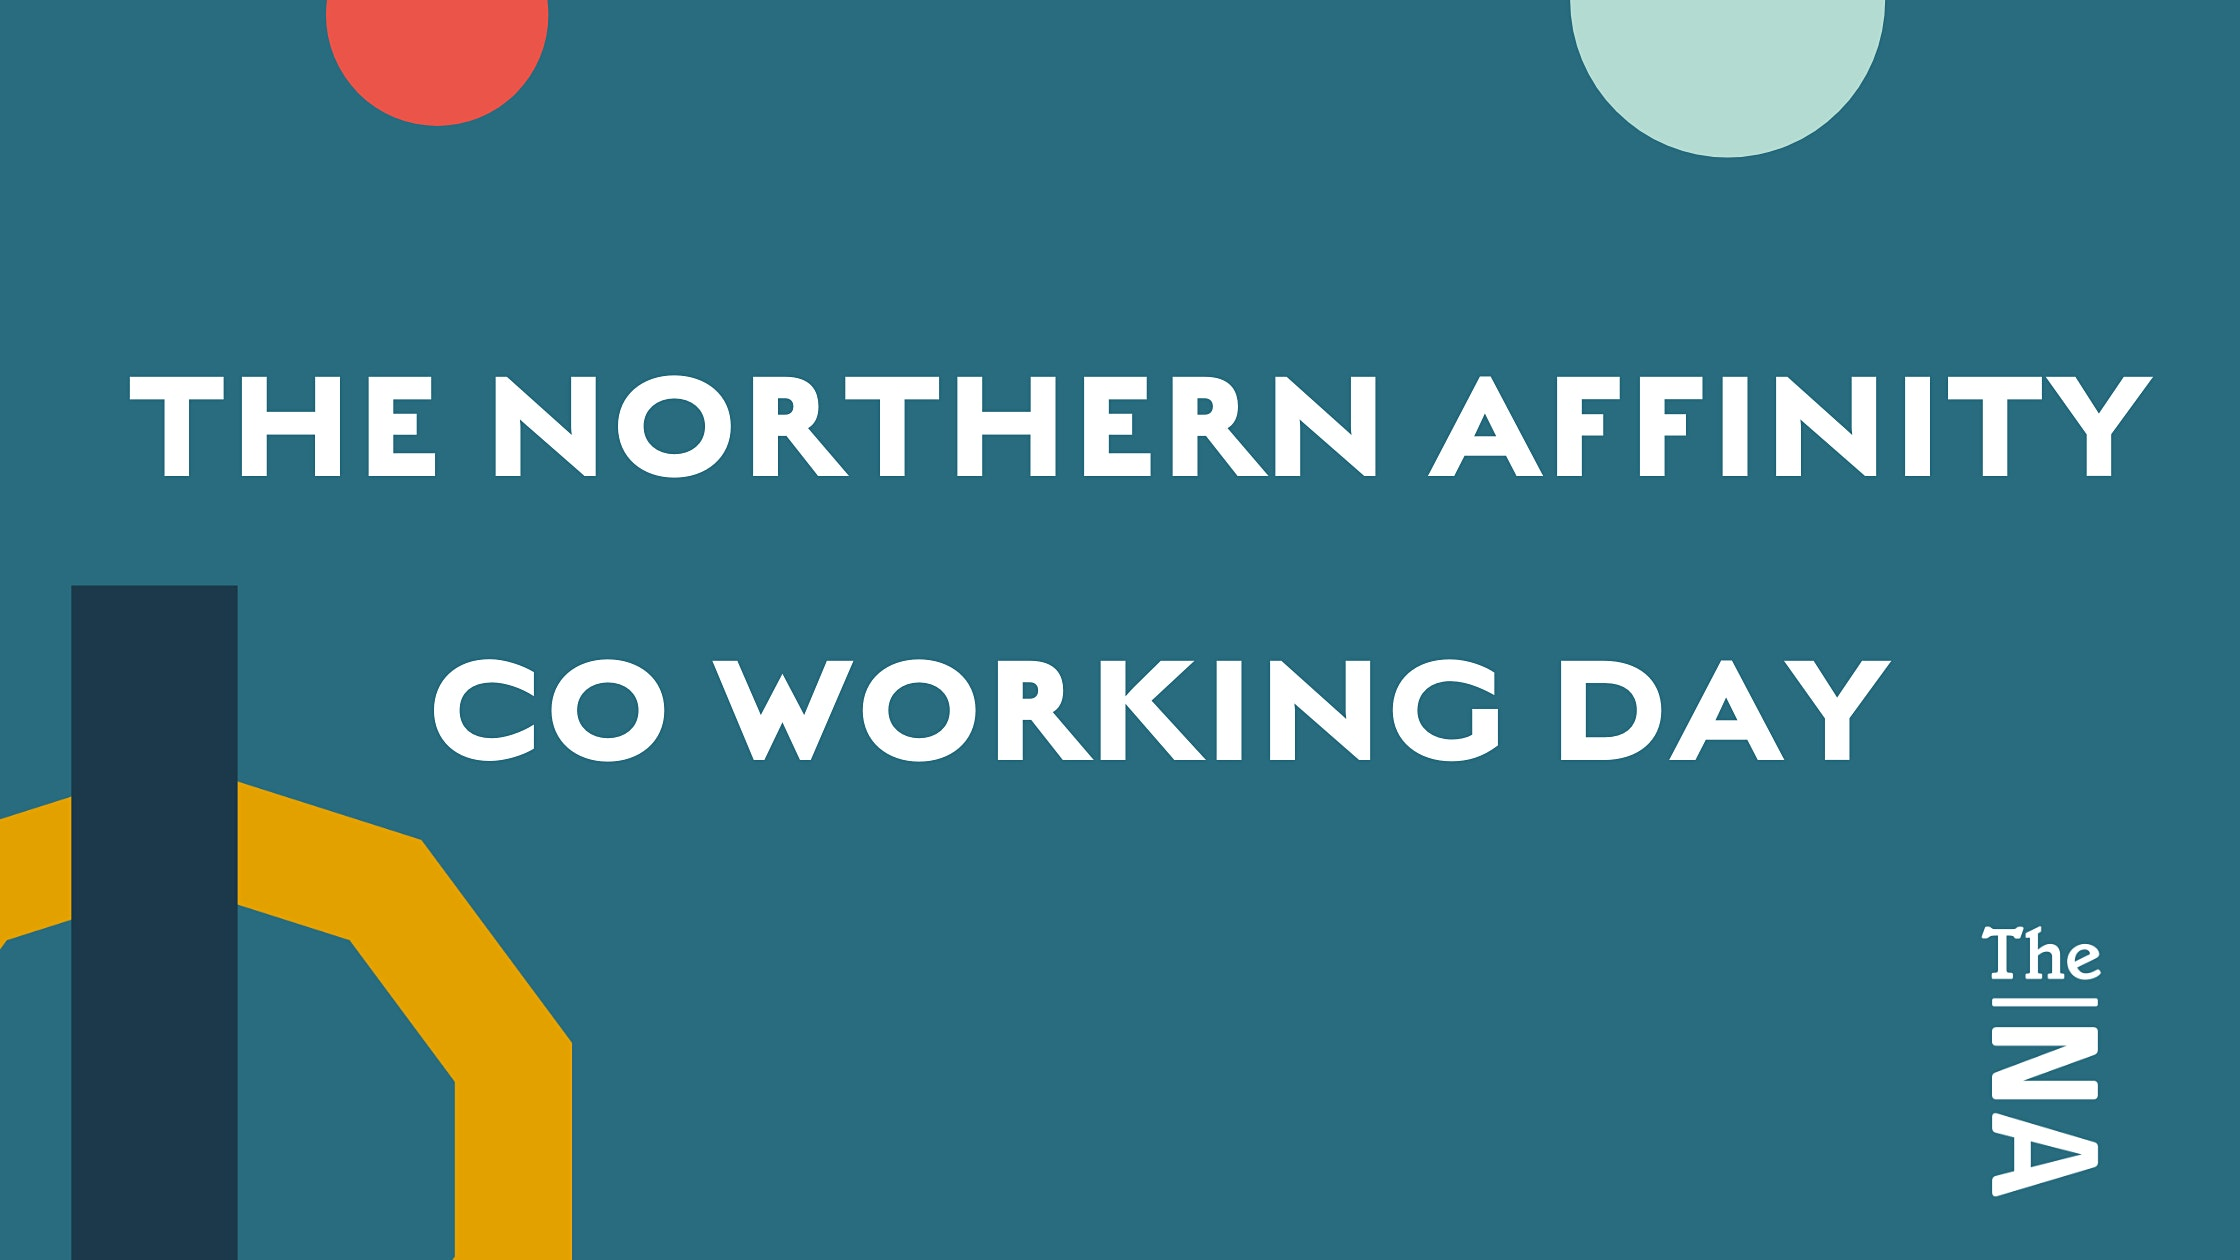 The Northern Affinity Co Working Day @ Empire House – Slaithwaite